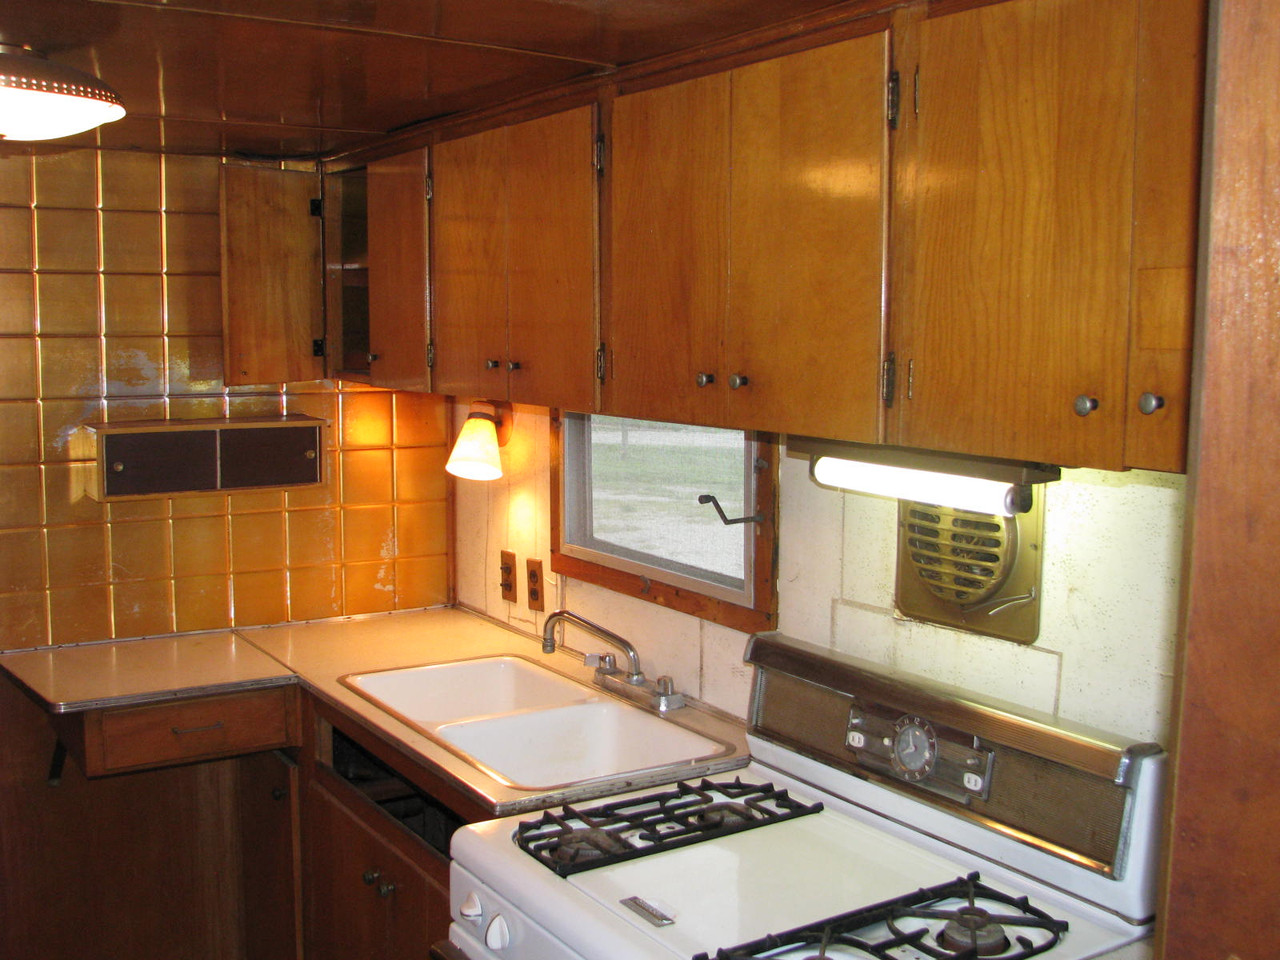 1956 Spartan 40 Ft. Royal Mansion #288